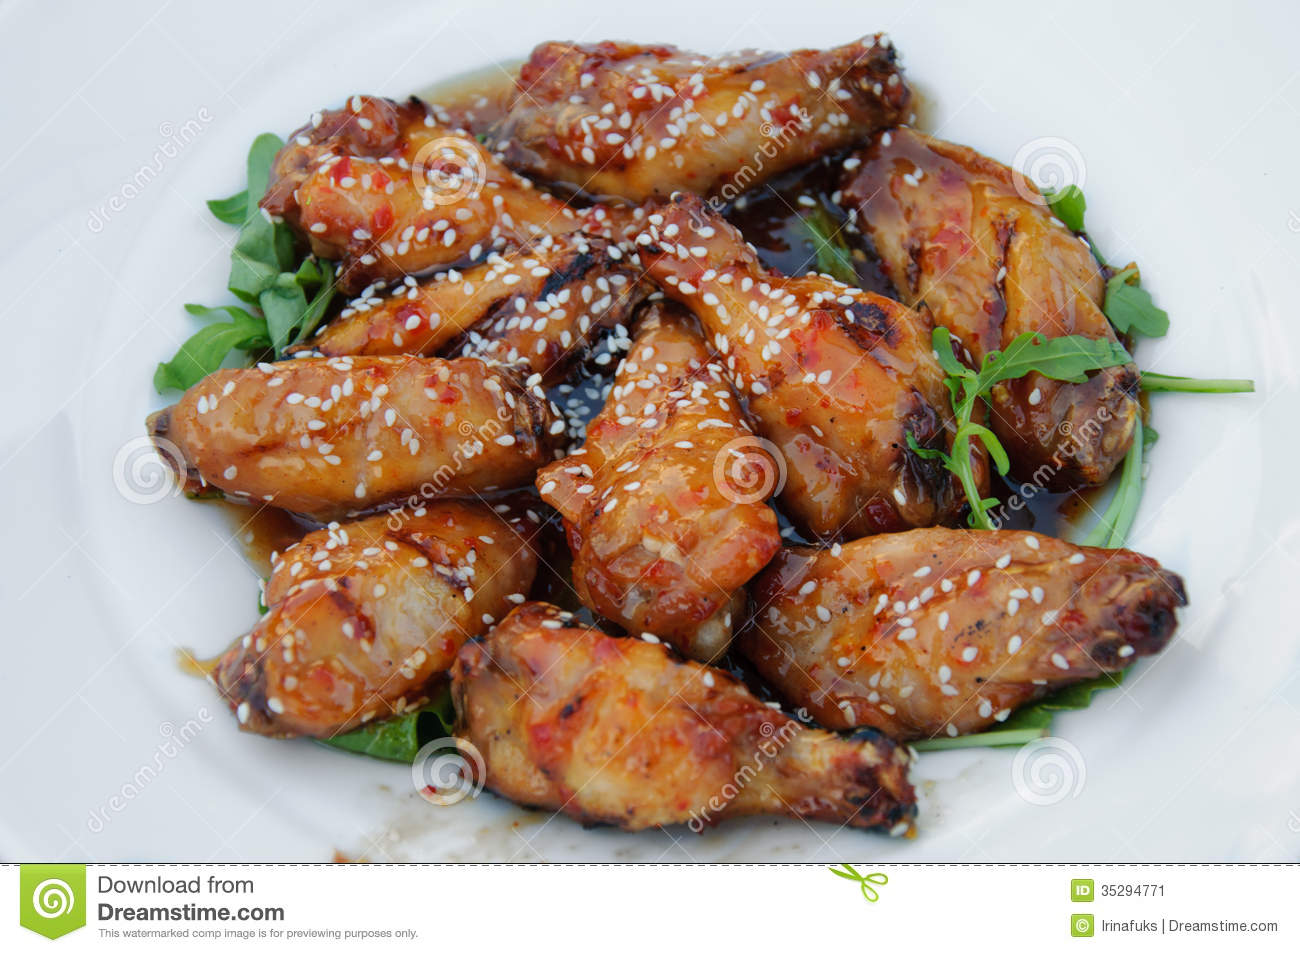 how to make hot sauce for chicken wings